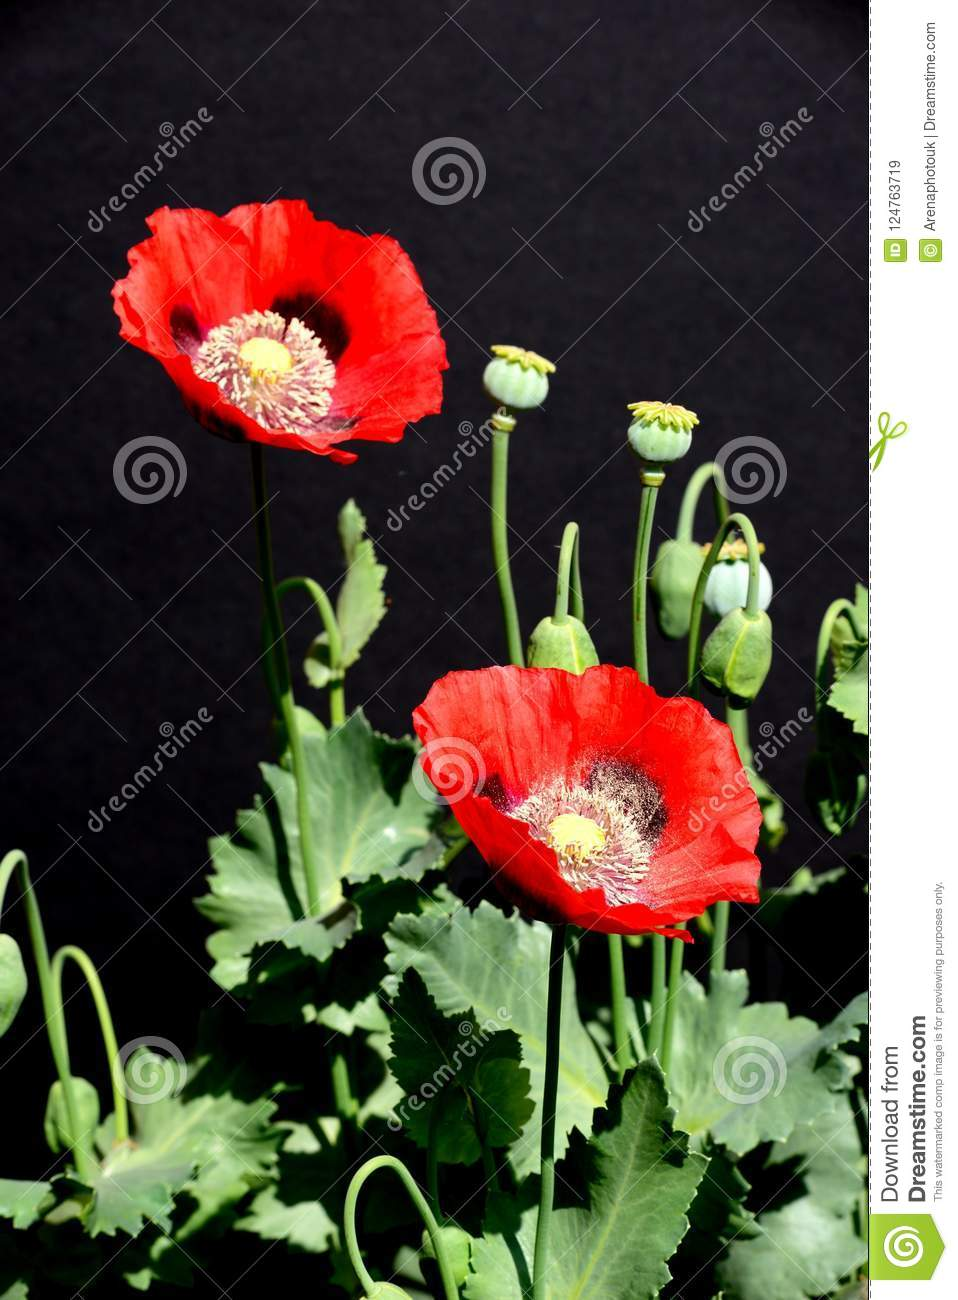 Red Poppies Against A Black Background Stock Image Image Of